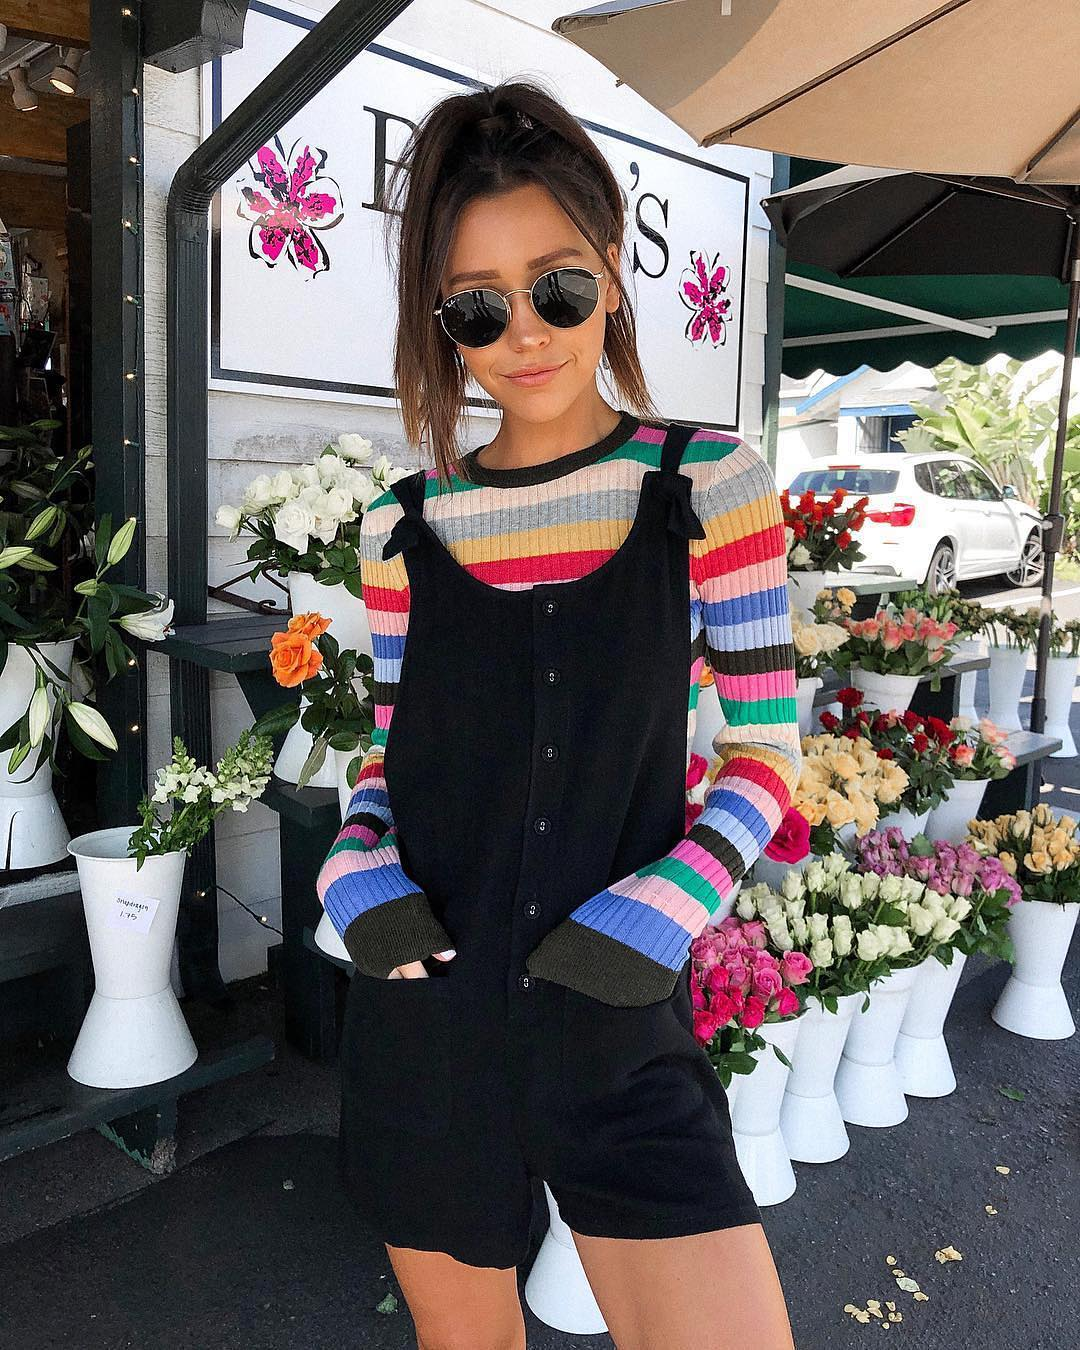 Rainbow Striped Top With Black Playsuit